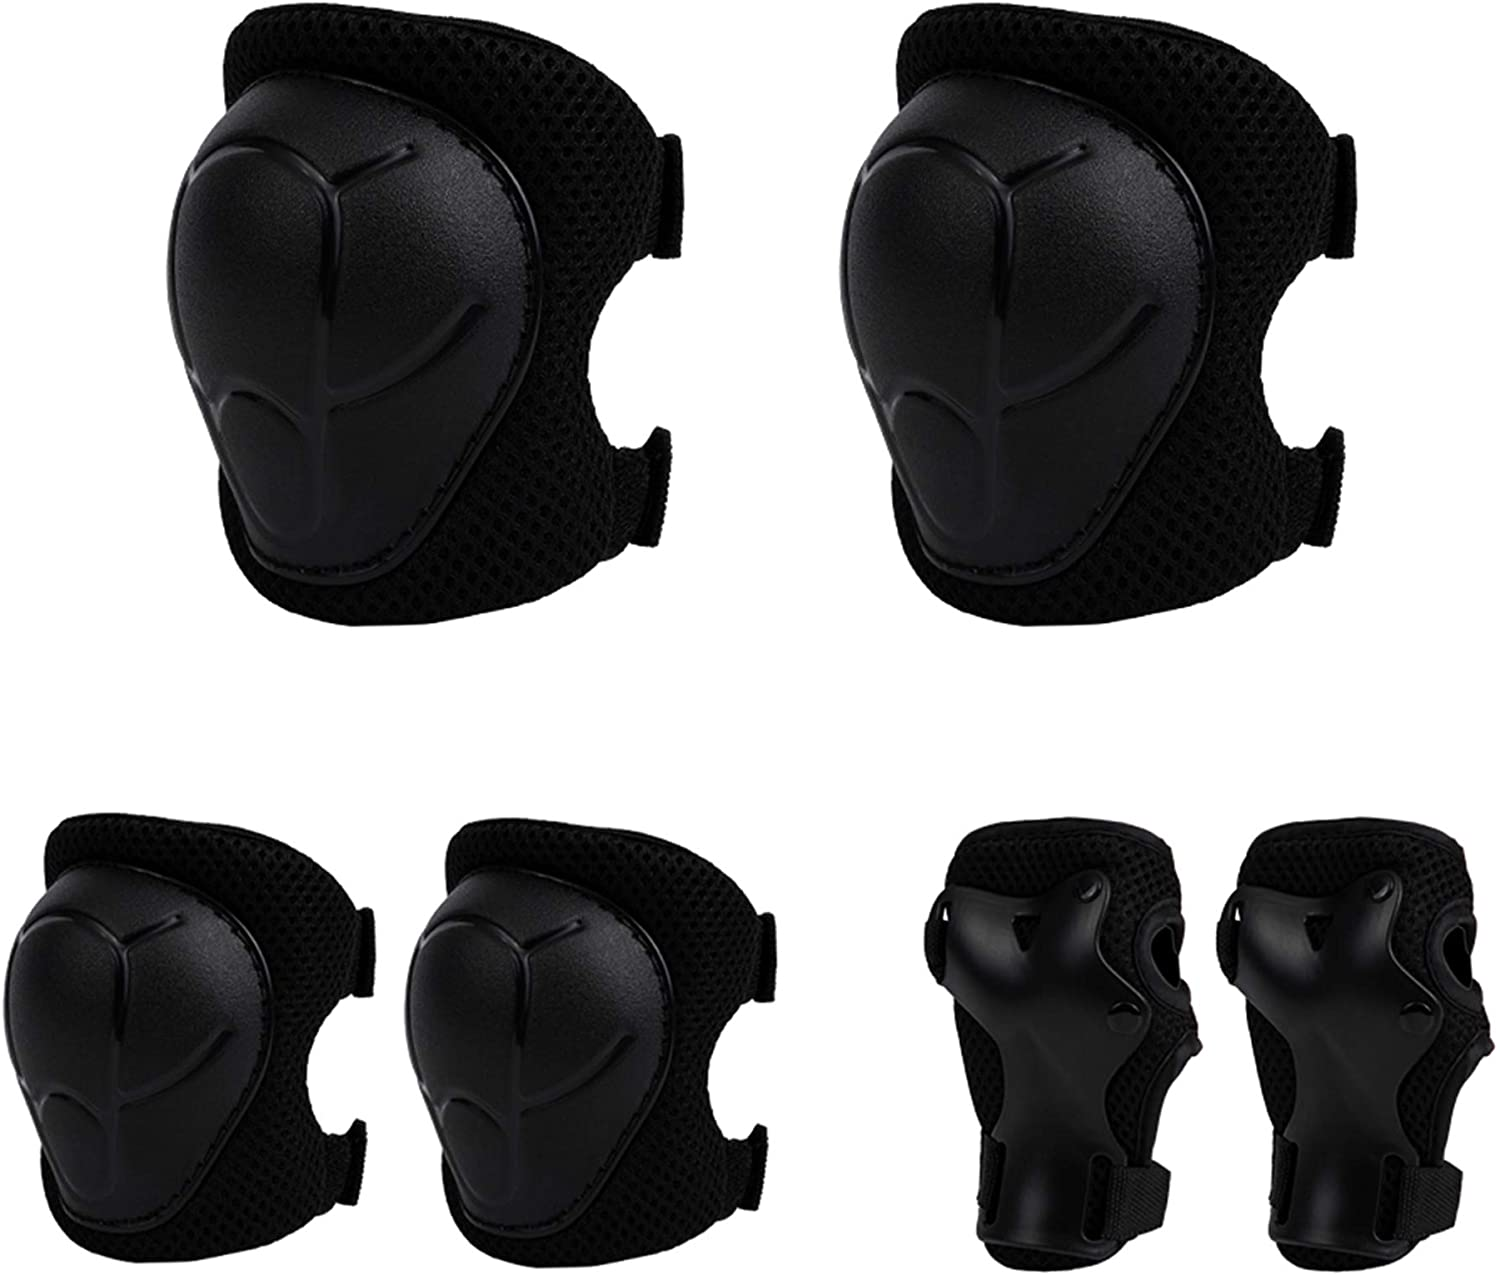 Anyoupin Kids Protective Gear, Knee Pads Elbow Pads and Wrist Guards 3 in 1 Set with Adjustable Strap for Roller-Skating Skateboard Cycling Skating Bike Scooter